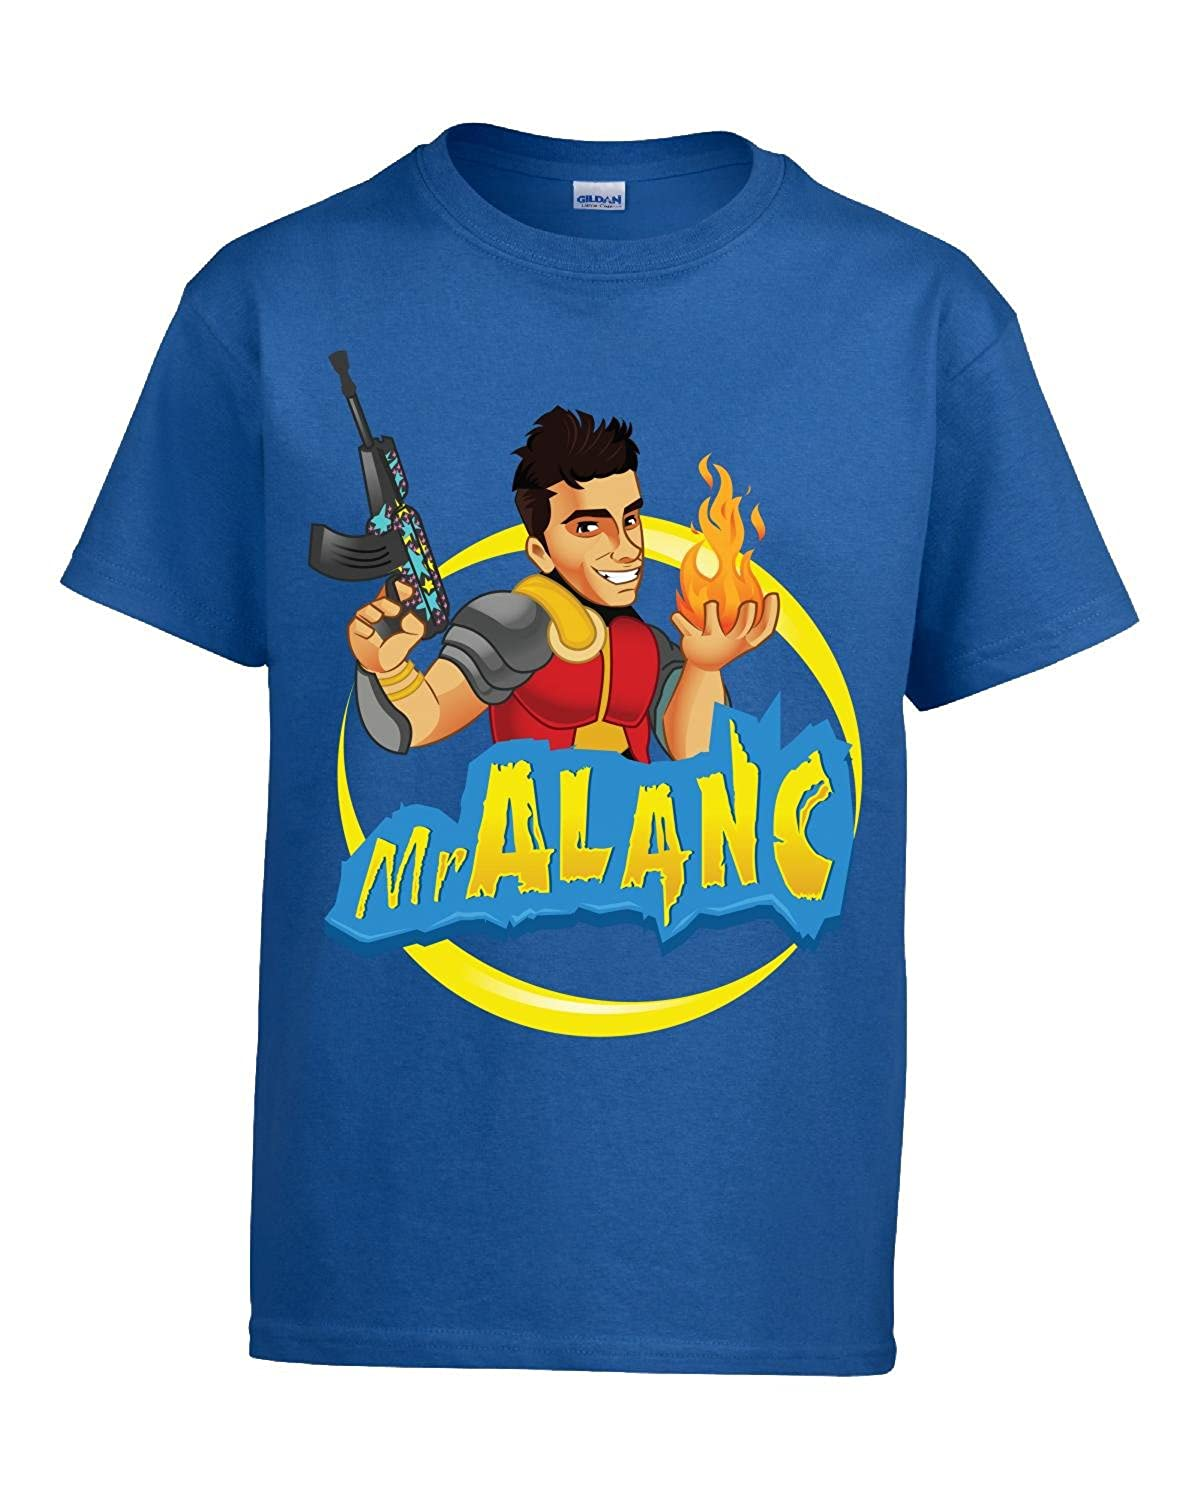 Mralanc Youtube Gaming Personality Official Merchandise-Boys T-shirt Royal